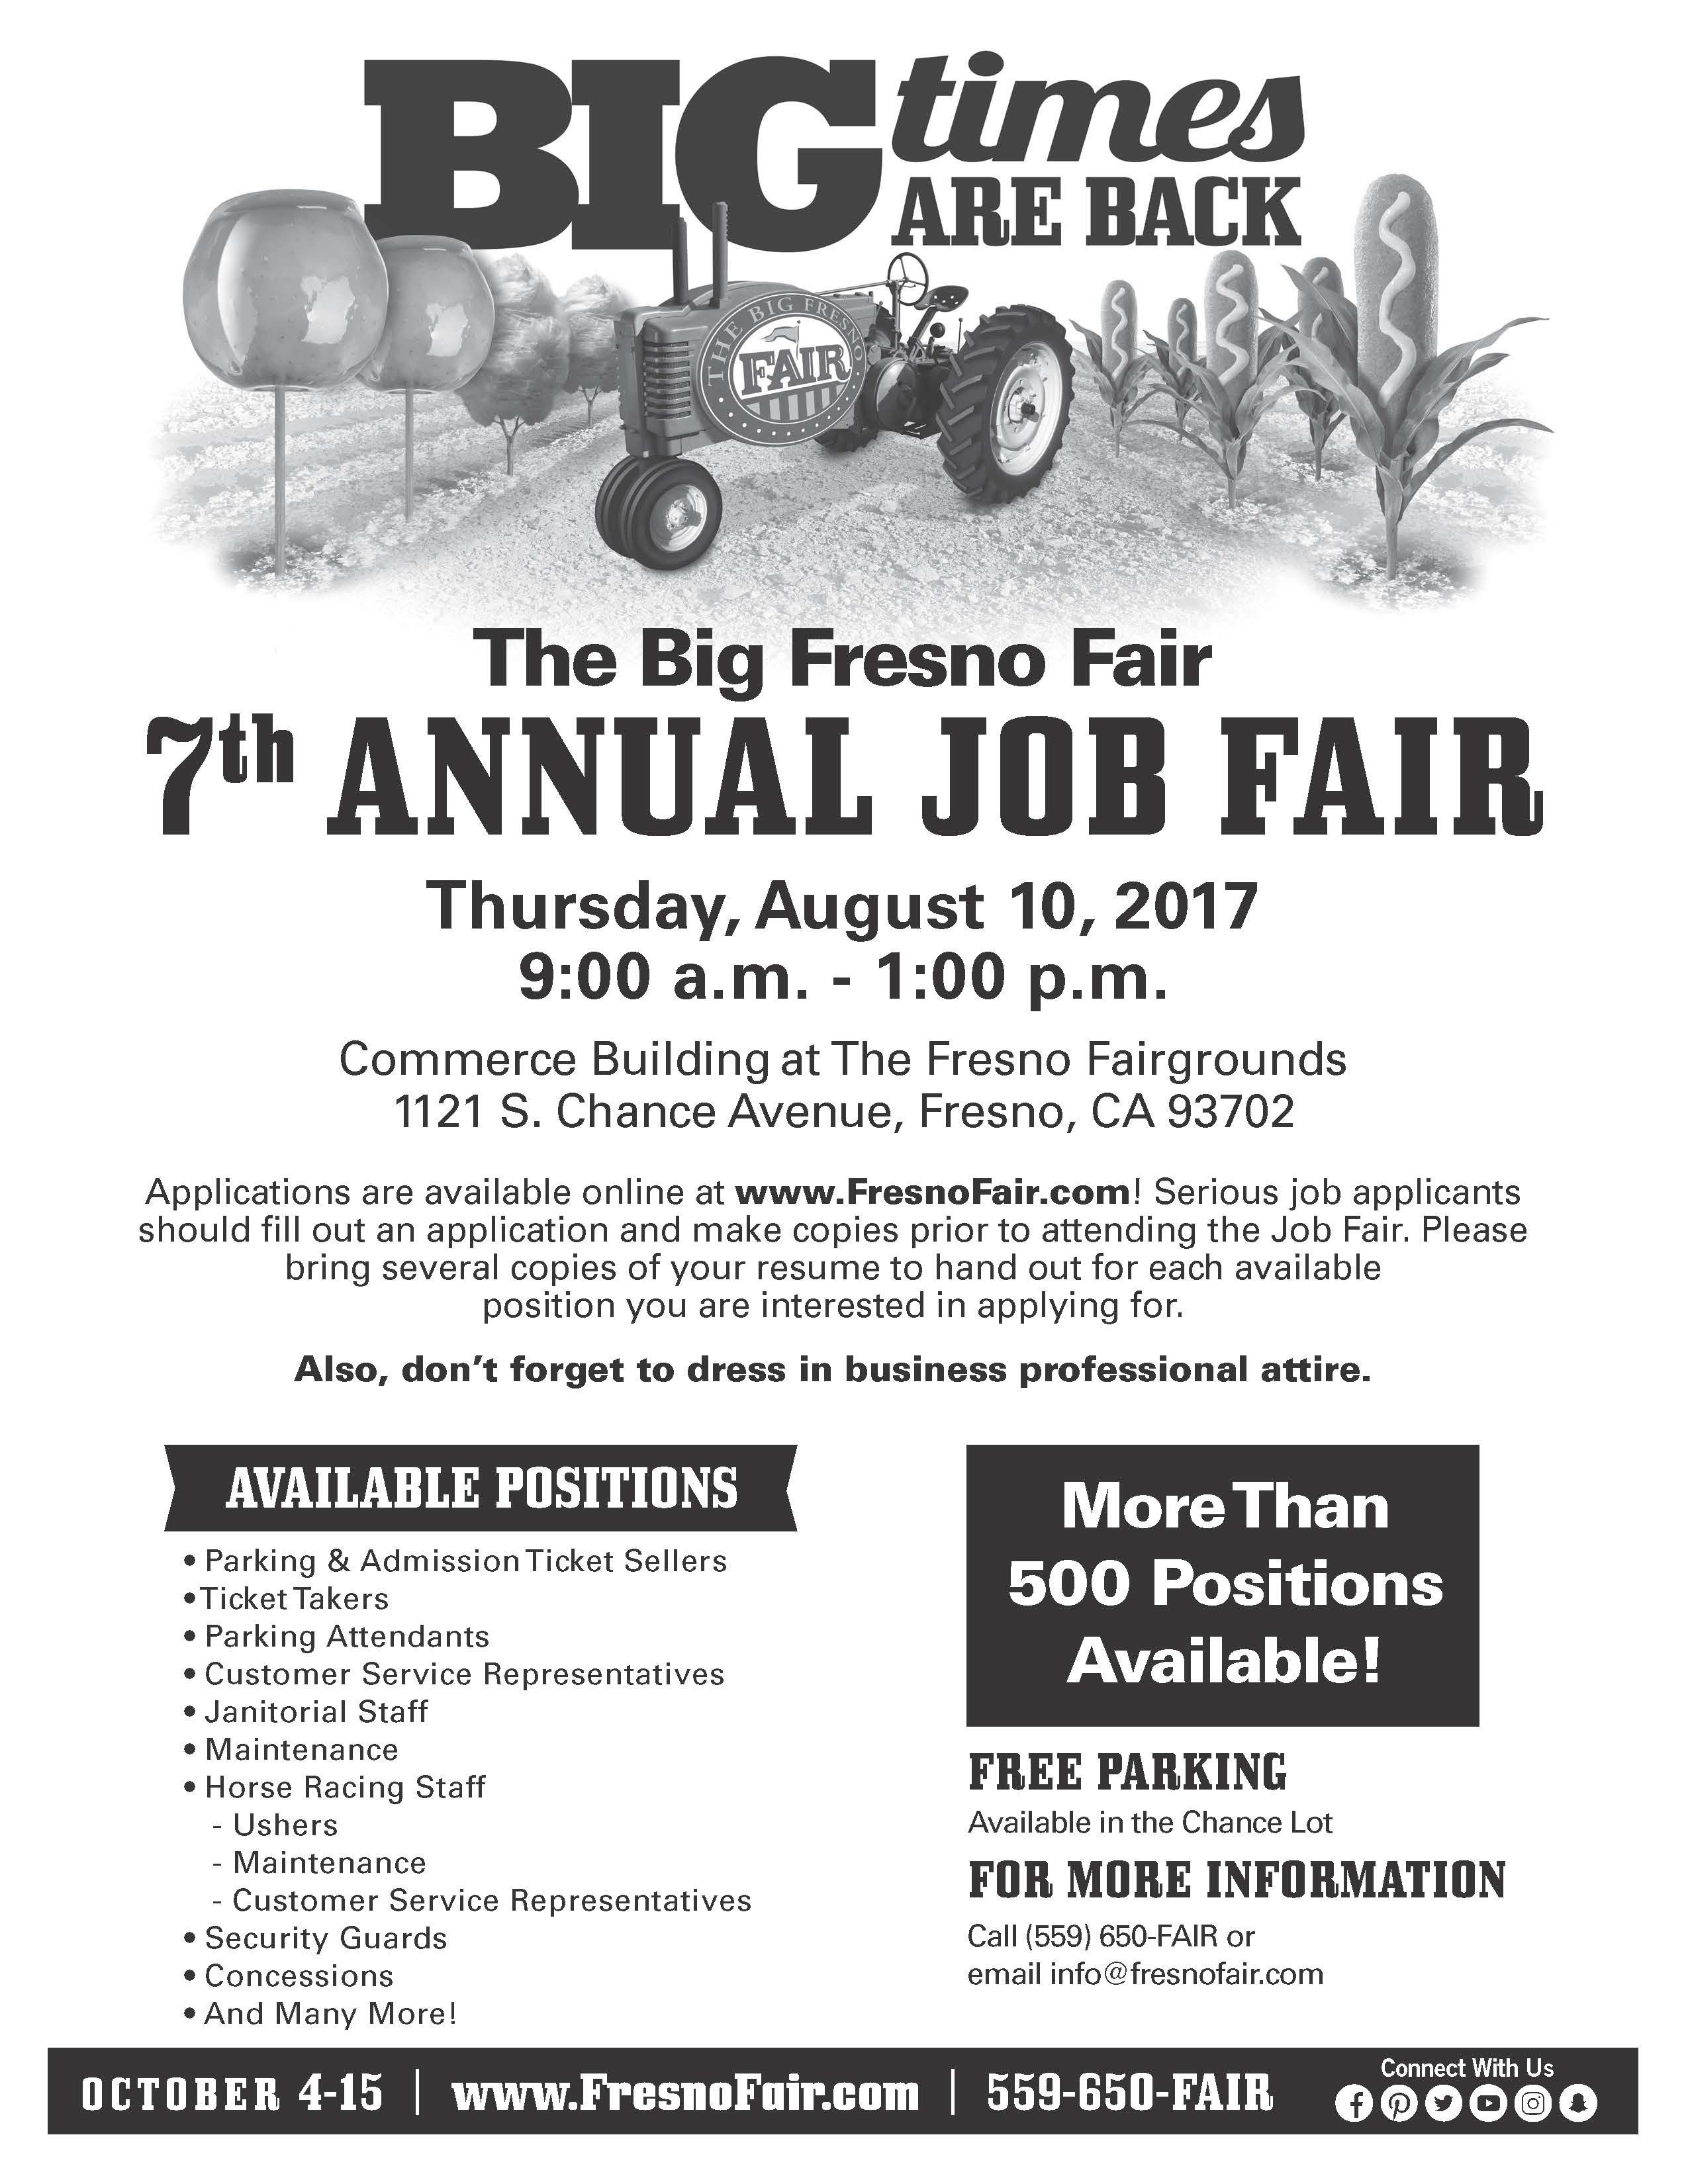 Do You Pride Yourself On Excellent Customer Service Then Don T Miss The 2017bff Annual Job Fair On Thurs 8 10 17 From 9 A M 1 P Job Fair Fresno Fair Job